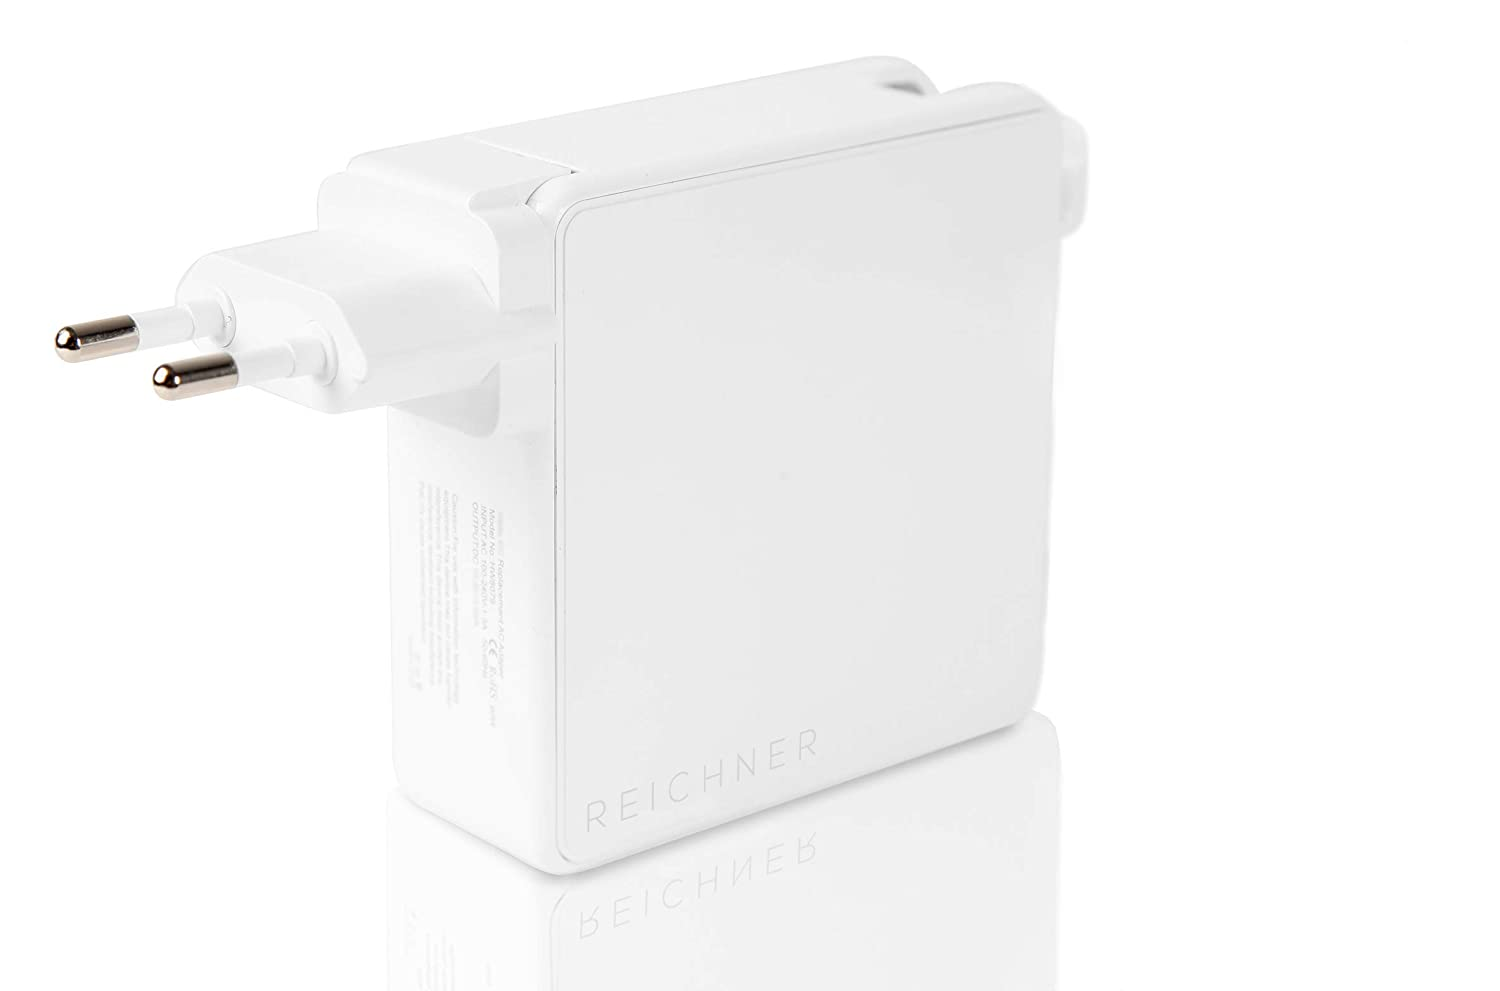 Reichner 85W 60W Cargador Adaptador PC Portátil Compatible con Apple MacBook Pro 13 15